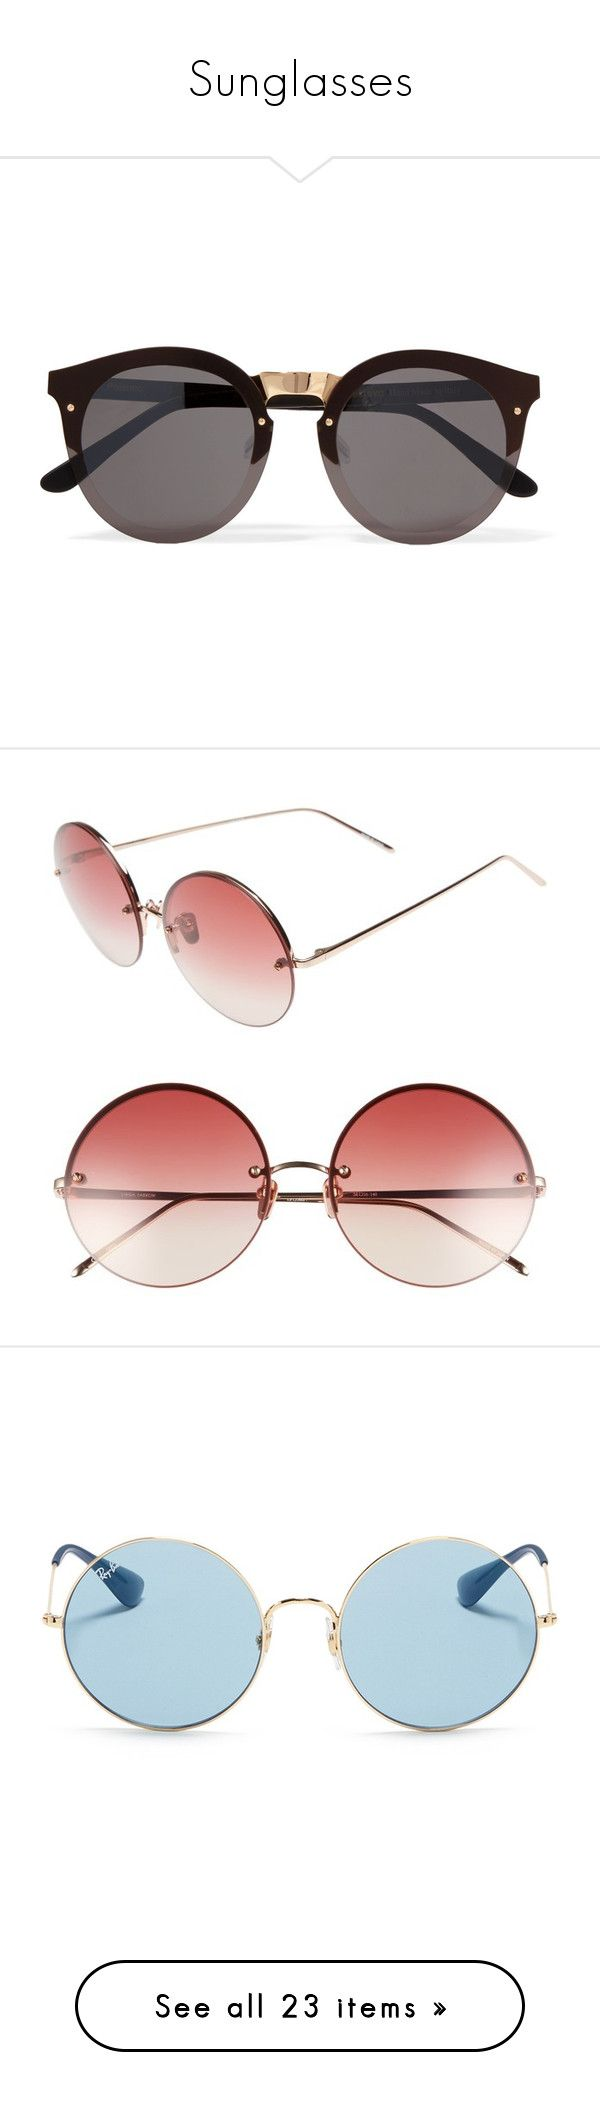 """""""Sunglasses"""" by manicmandy ❤ liked on Polyvore featuring accessories, eyewear, sunglasses, glasses, jewelry, black, lens glasses, gold colored glasses, round sunglasses and matte glasses"""